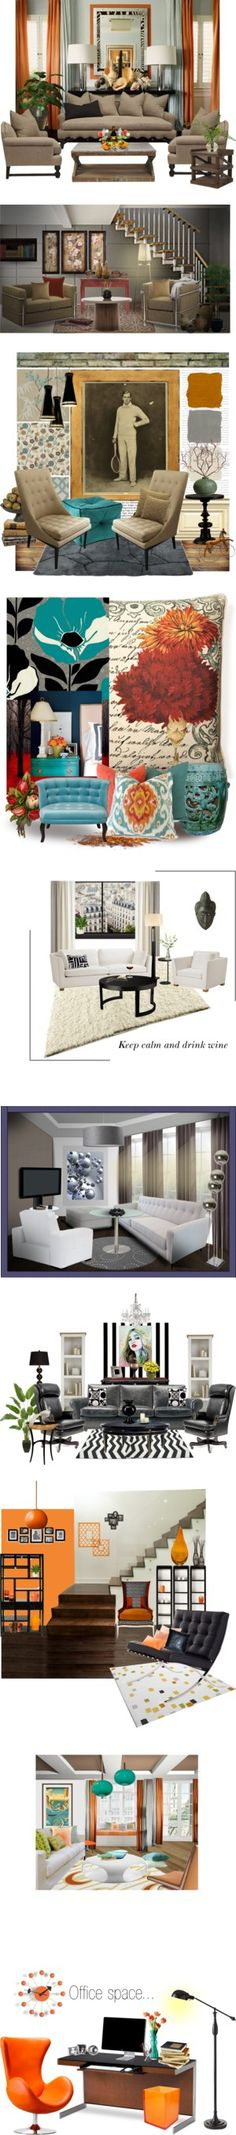 """""""Top Interior Design Sets for Oct 28th, 2012"""" by polyvore ❤ liked on Polyvore"""